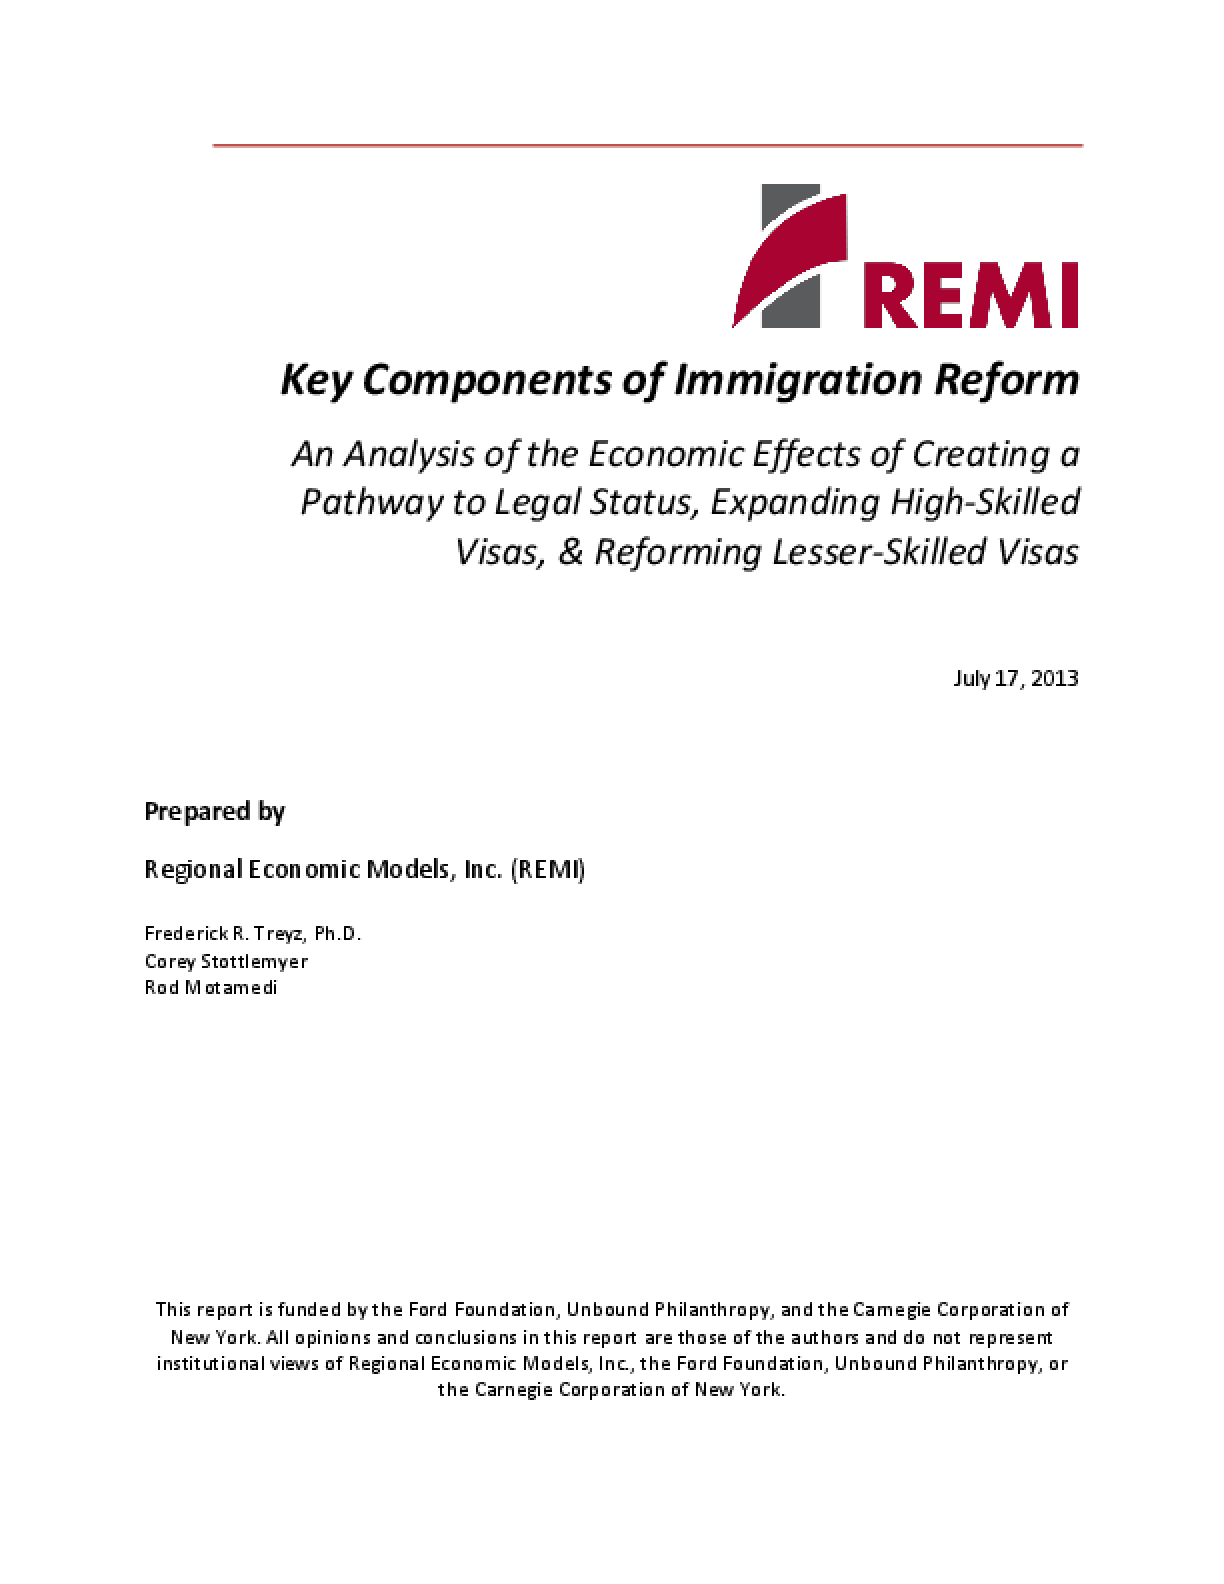 Key Components of Immigration Reform: An Analysis of the